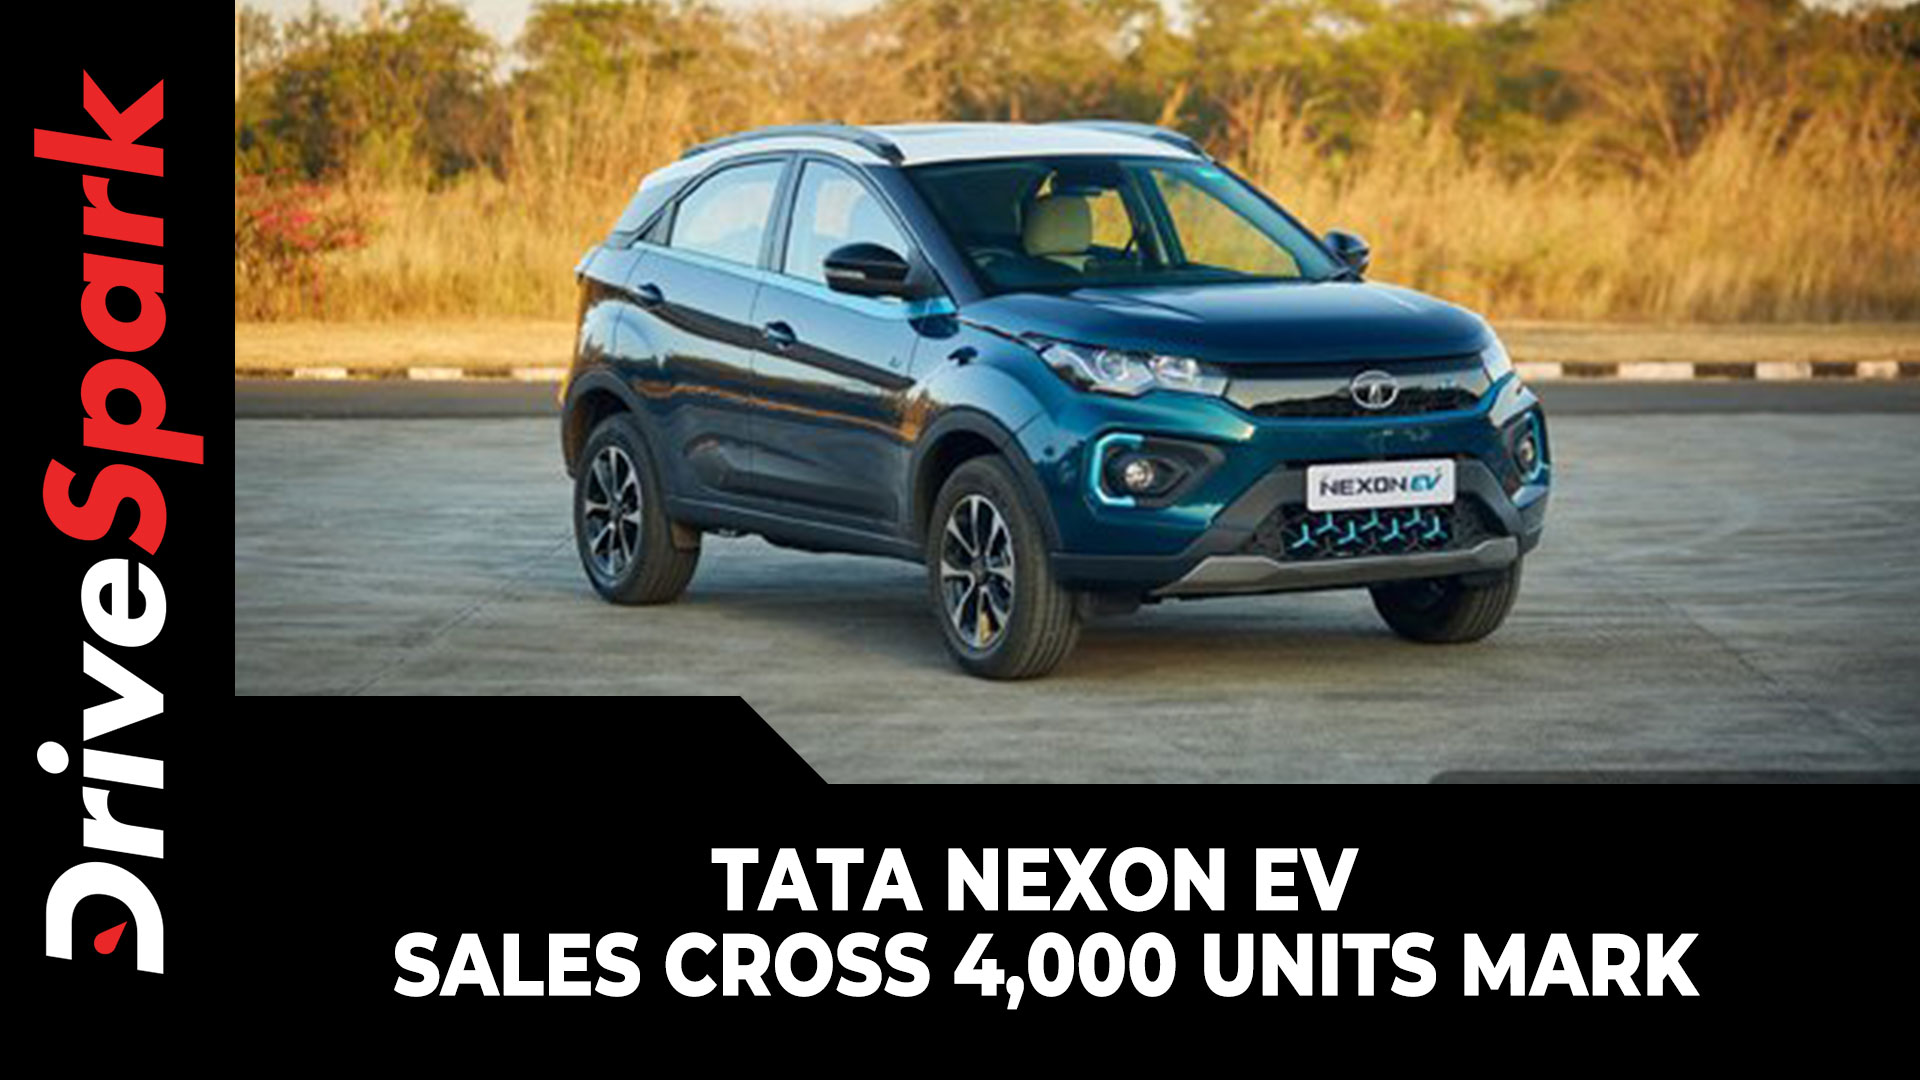 Tata Nexon EV Sales Cross 4,000 Units Mark | New Milestone Achieved!